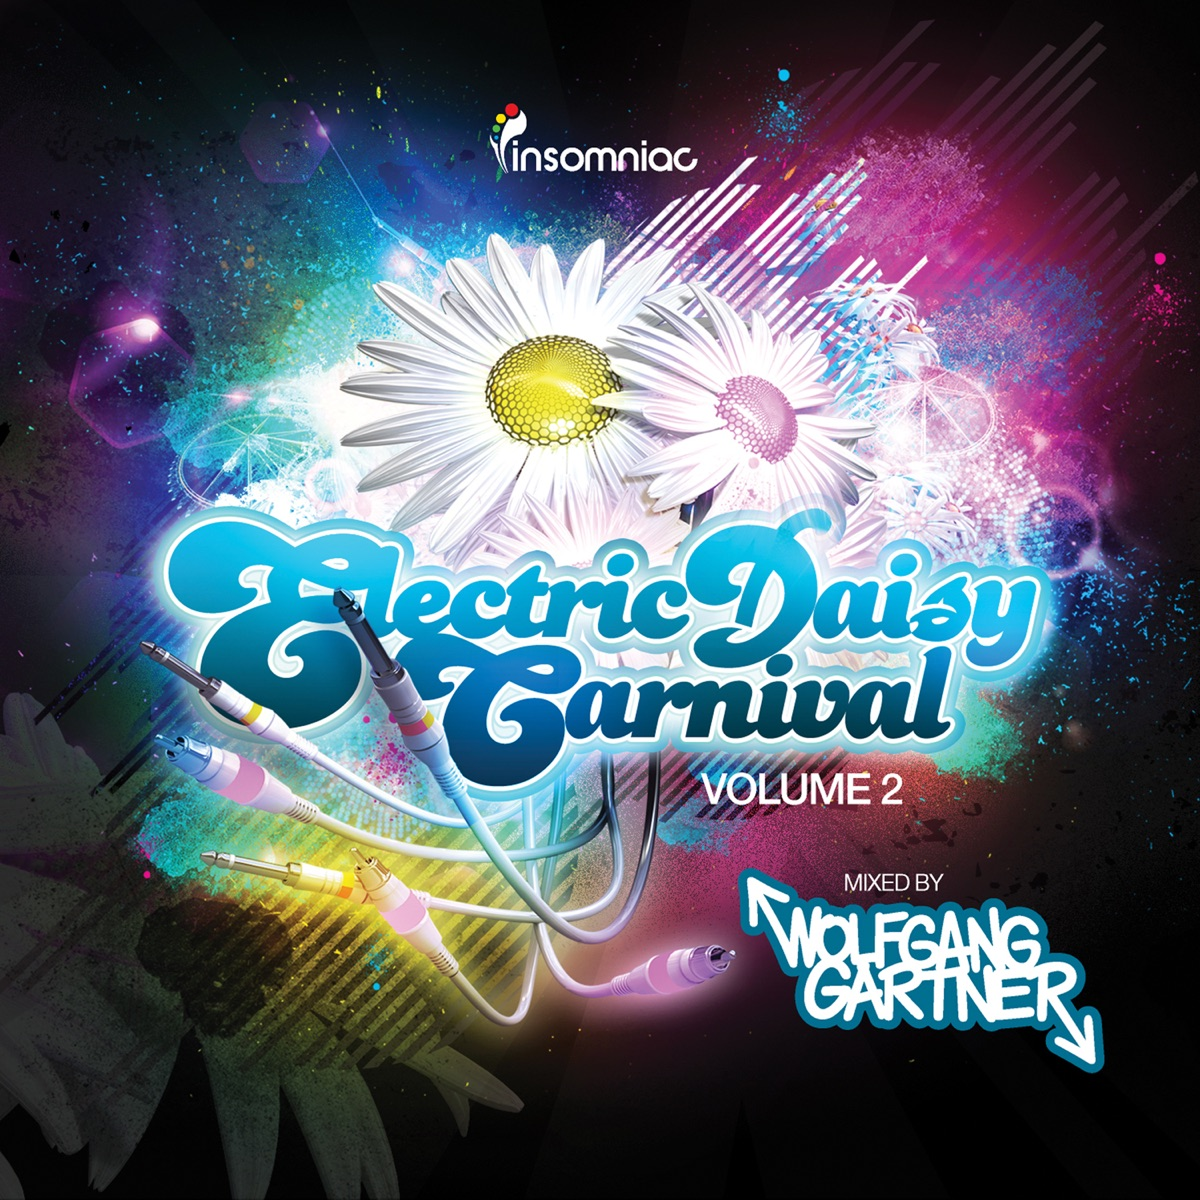 Electric Daisy Carnival Vol 2 Mixed By Wolfgang Gartner Wolfgang Gartner CD cover